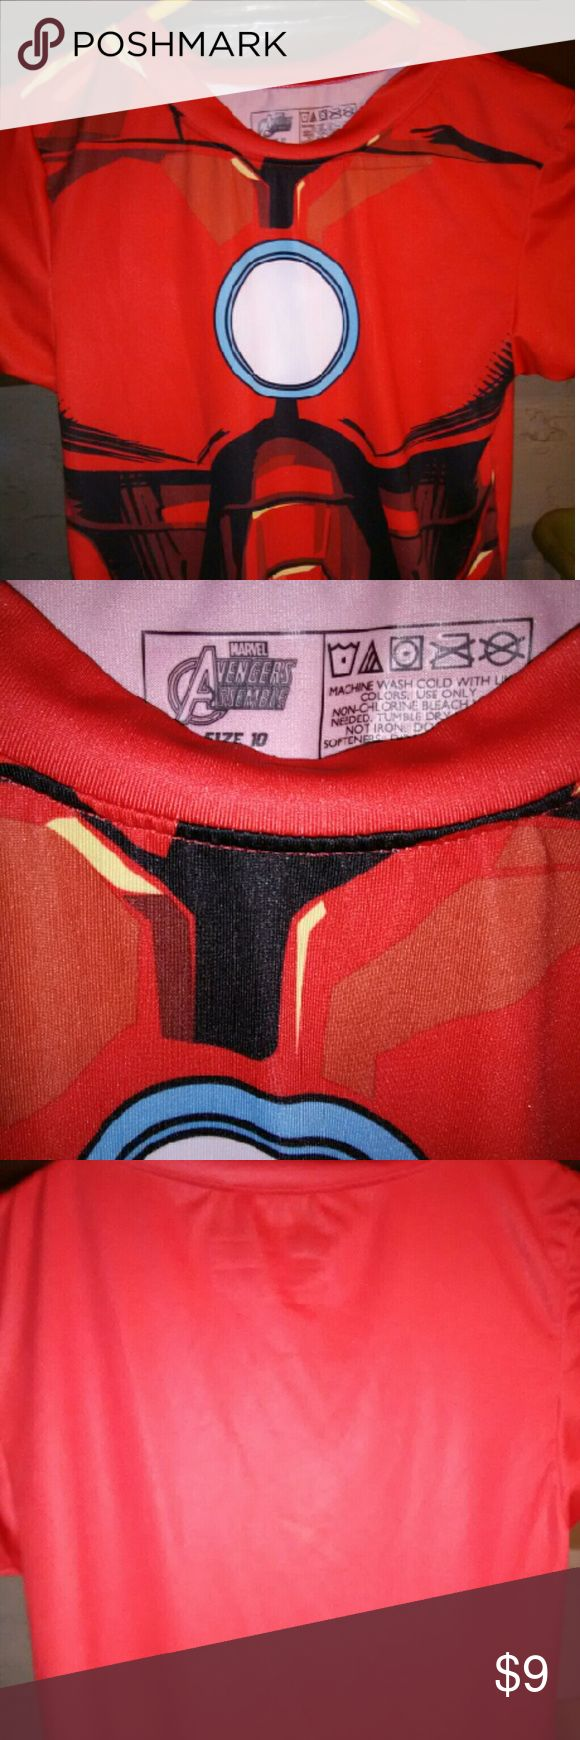 Size 10 kids stretch costume,PJ light weight Shirt Size 10 Iron man,marvel kids top,can be for every day to day usage,costume,or Pj top,i actually have a super hero shirt that i adore its a joker one,so not only can your kids get into having fun,if u shop around u could always be a classical marcel matching family and enjoy a fun day.this shirt is size 10,no holes,tares,marks,burns,pet free,odor free,made in china ,90 percent polyester,10%spandex Marvel Shirts & Tops Tees - Short Sleeve